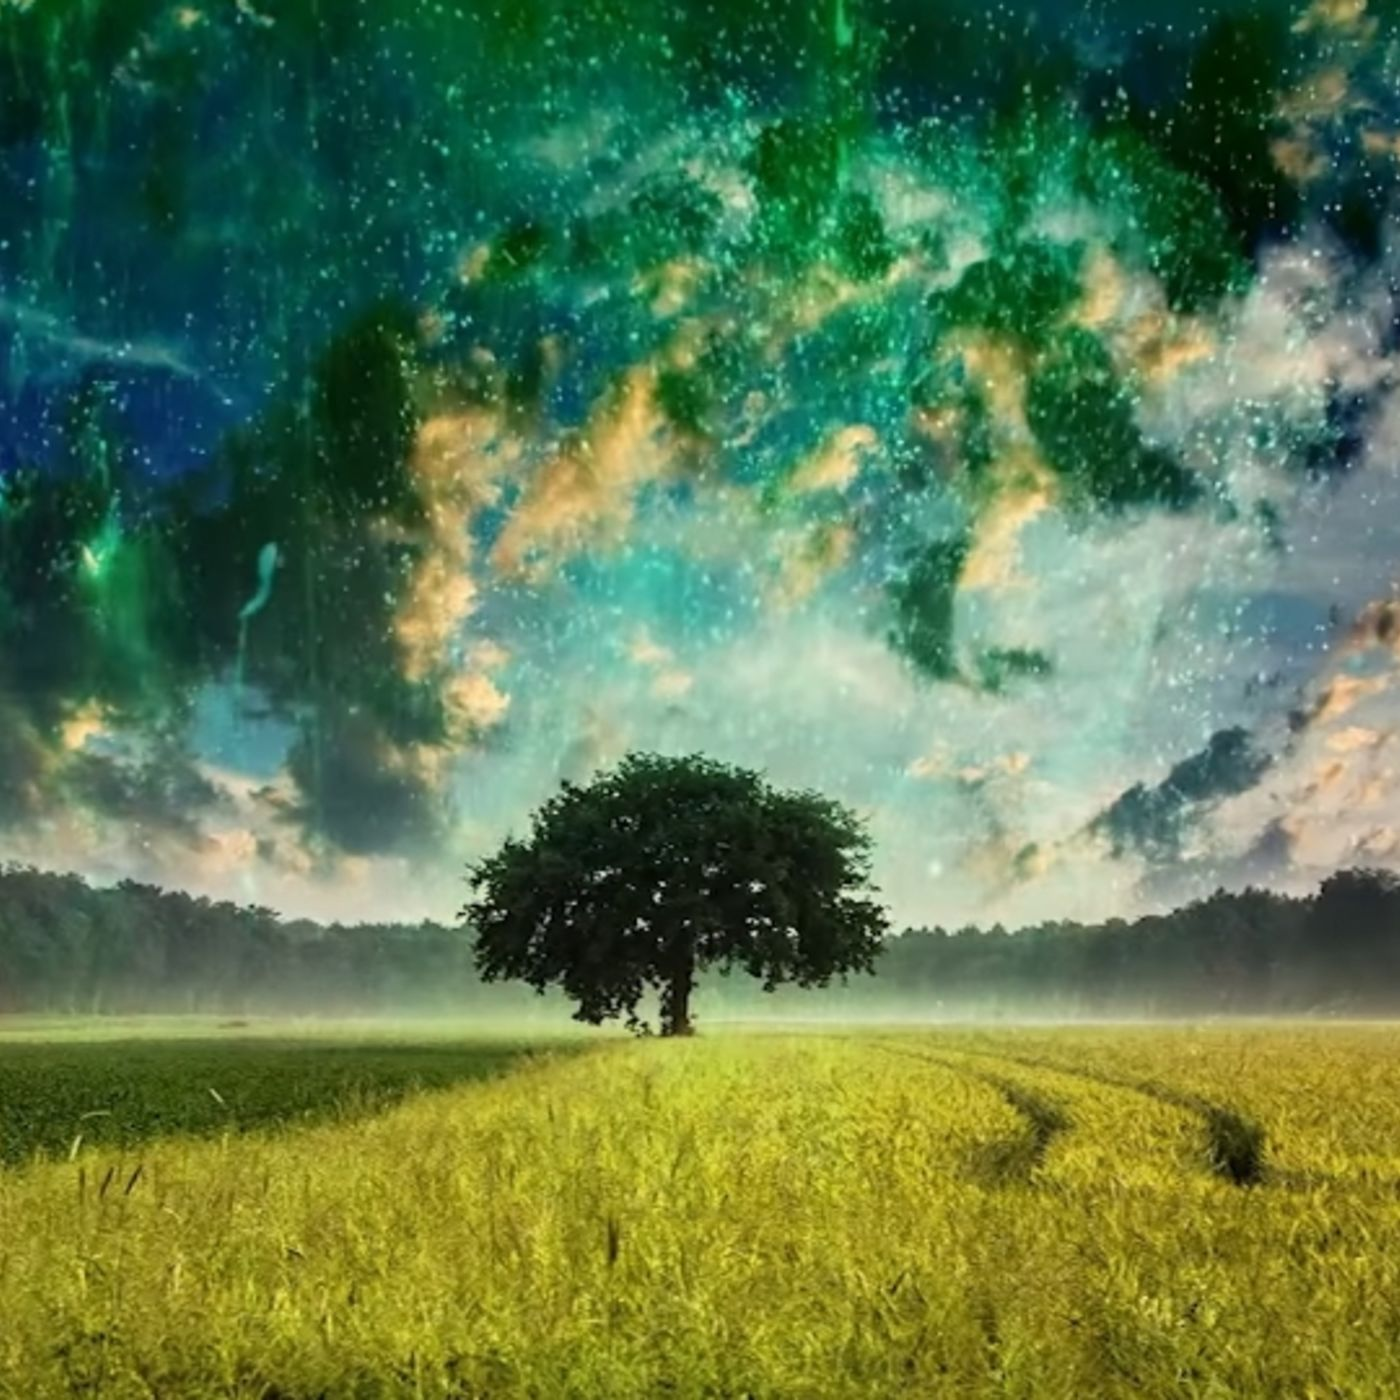 Earth Energy, relentless spiritual ailments and the great divide